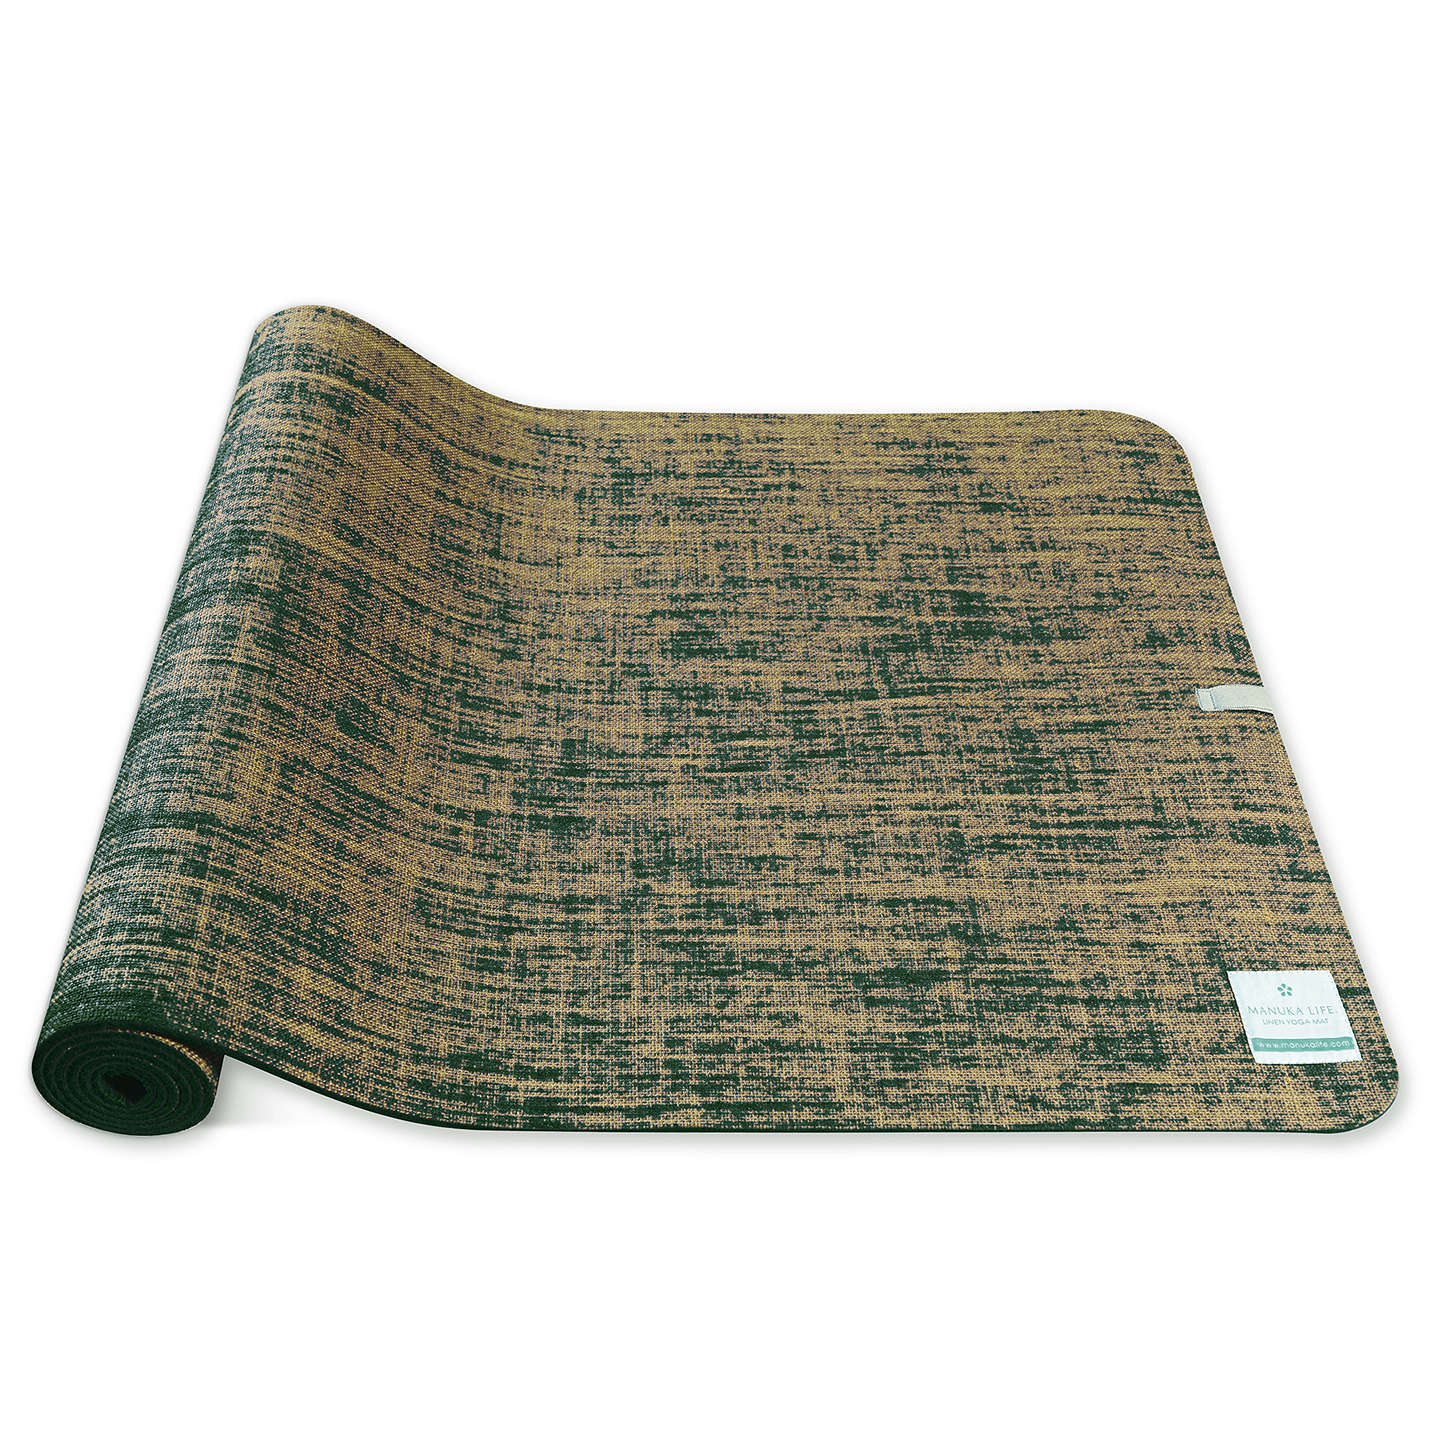 BuyManuka Life Linen 5mm Yoga Mat, Green Online at johnlewis.com